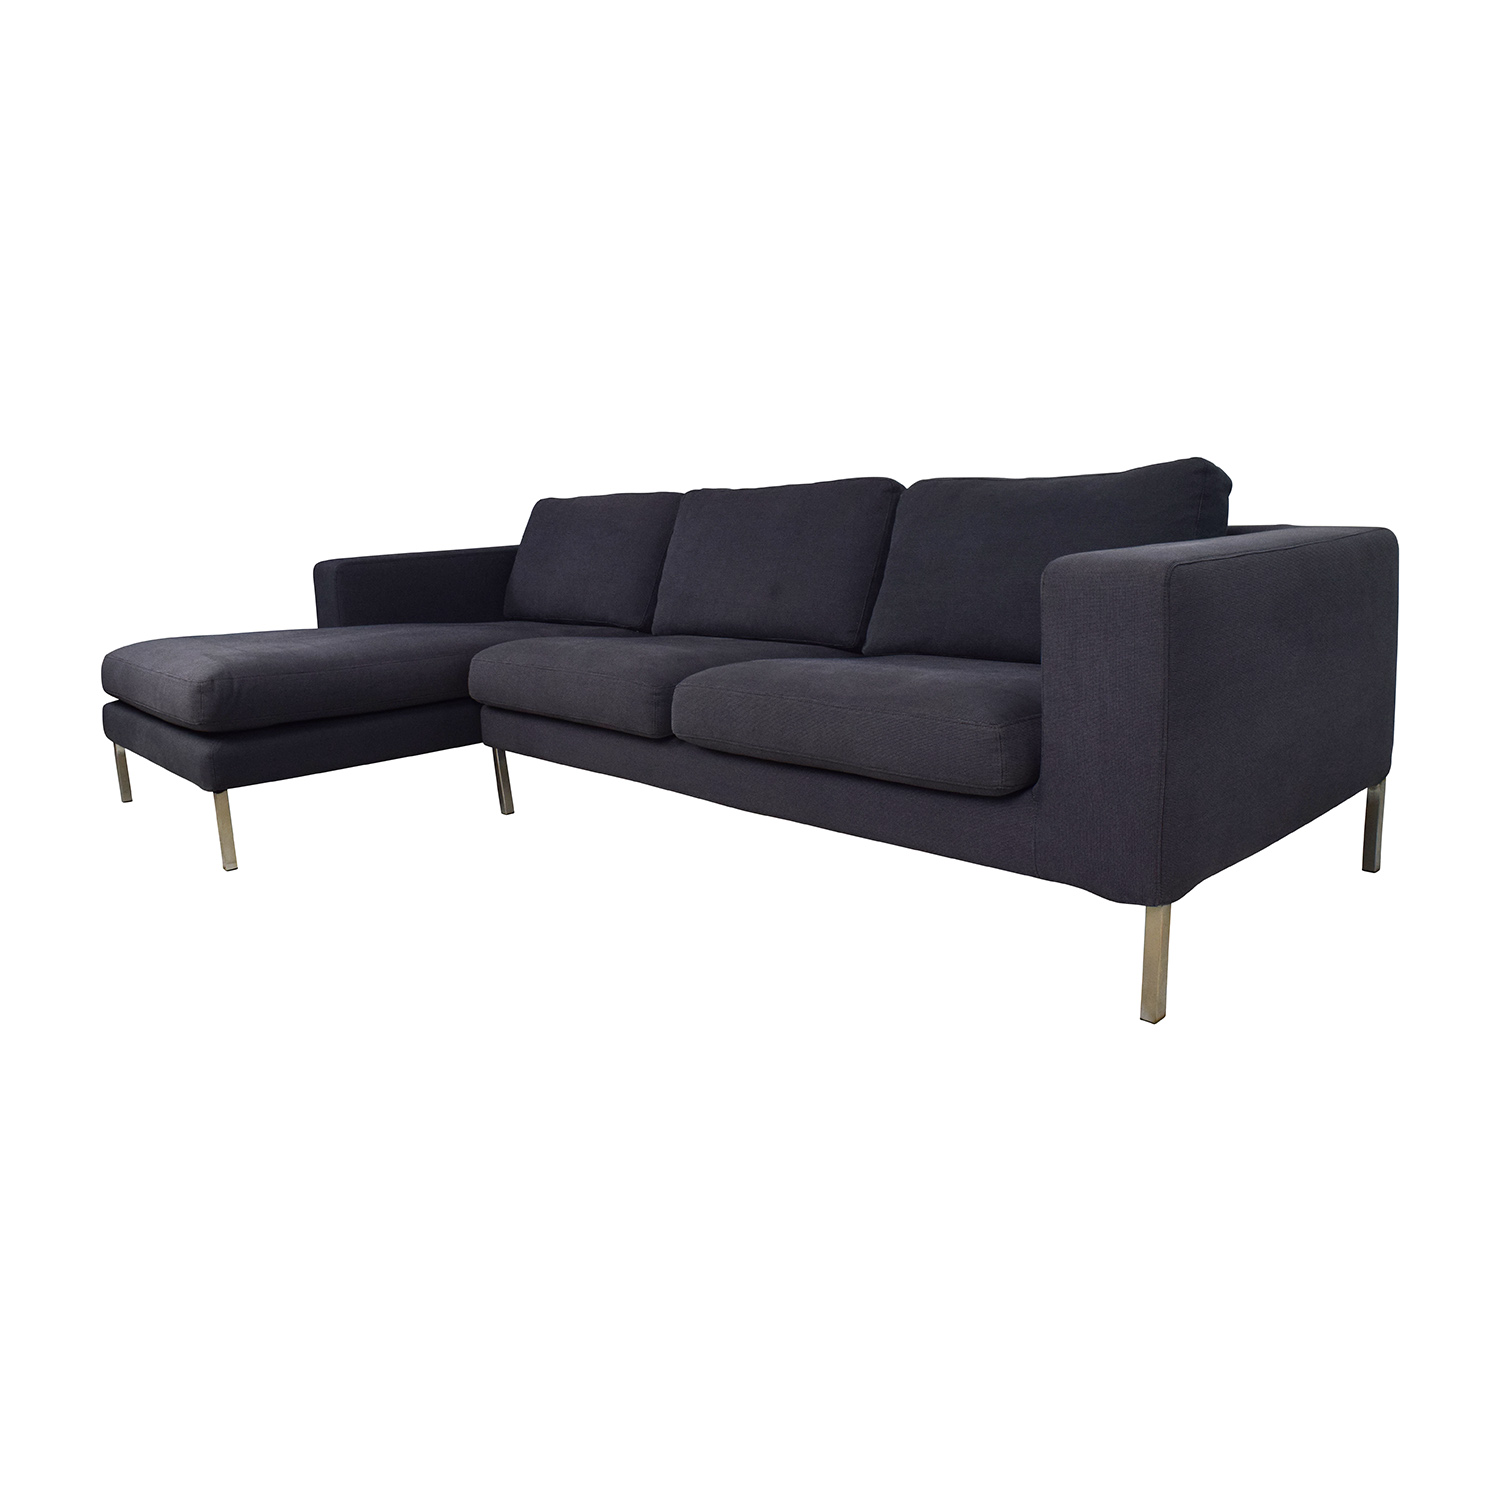 67 off design within reach design within reach neo sectional sofas. Black Bedroom Furniture Sets. Home Design Ideas